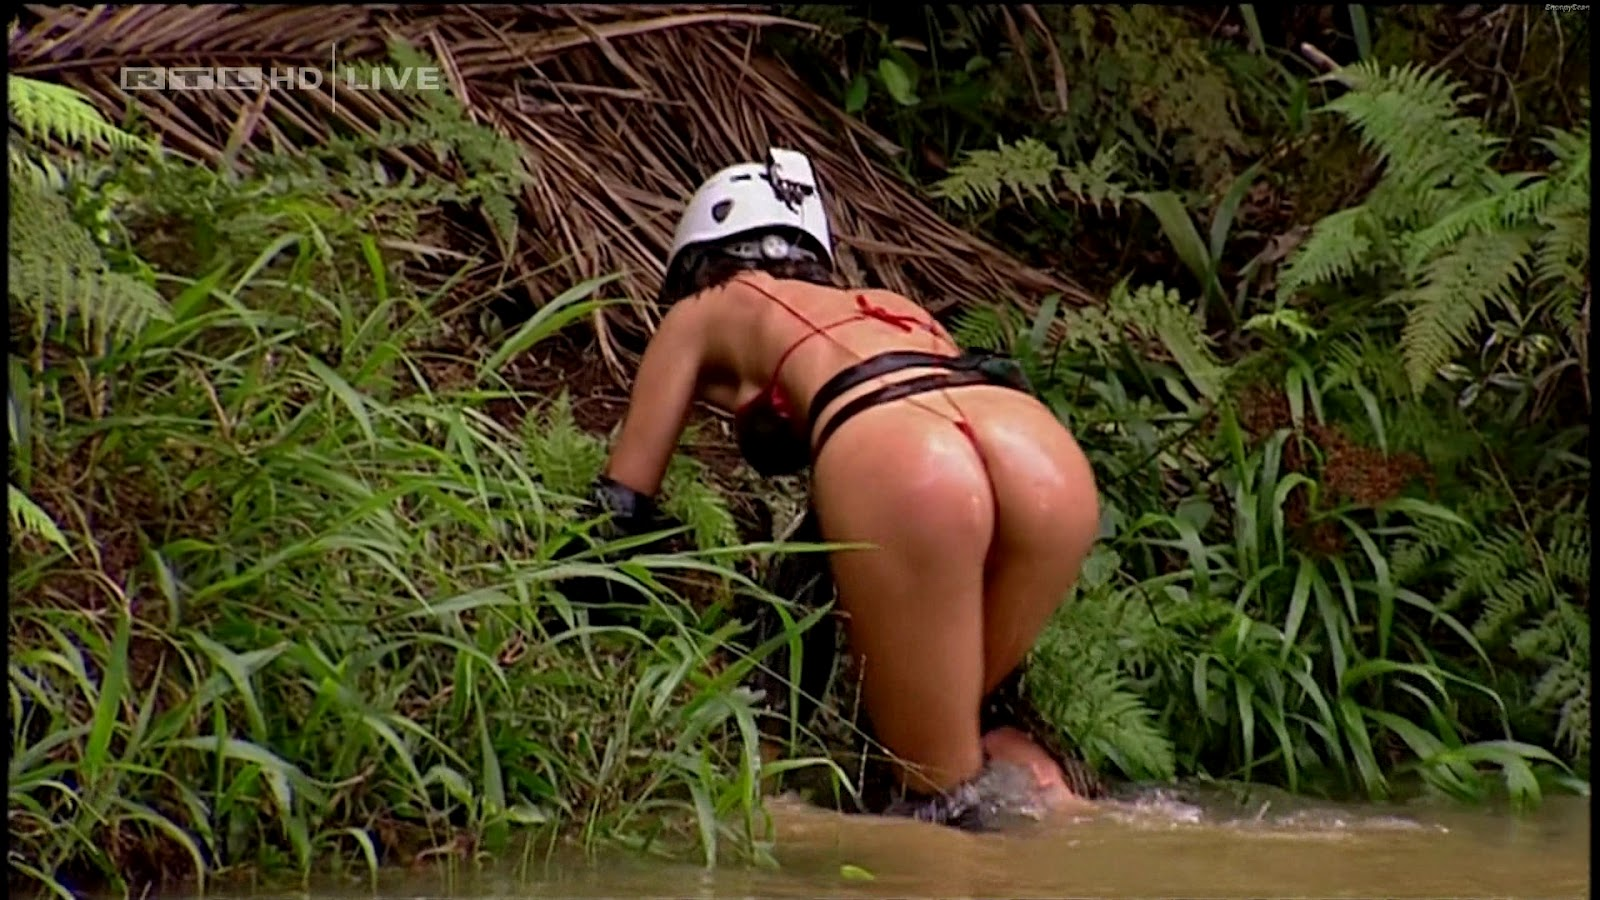 ass worsh michaela schäfer videos